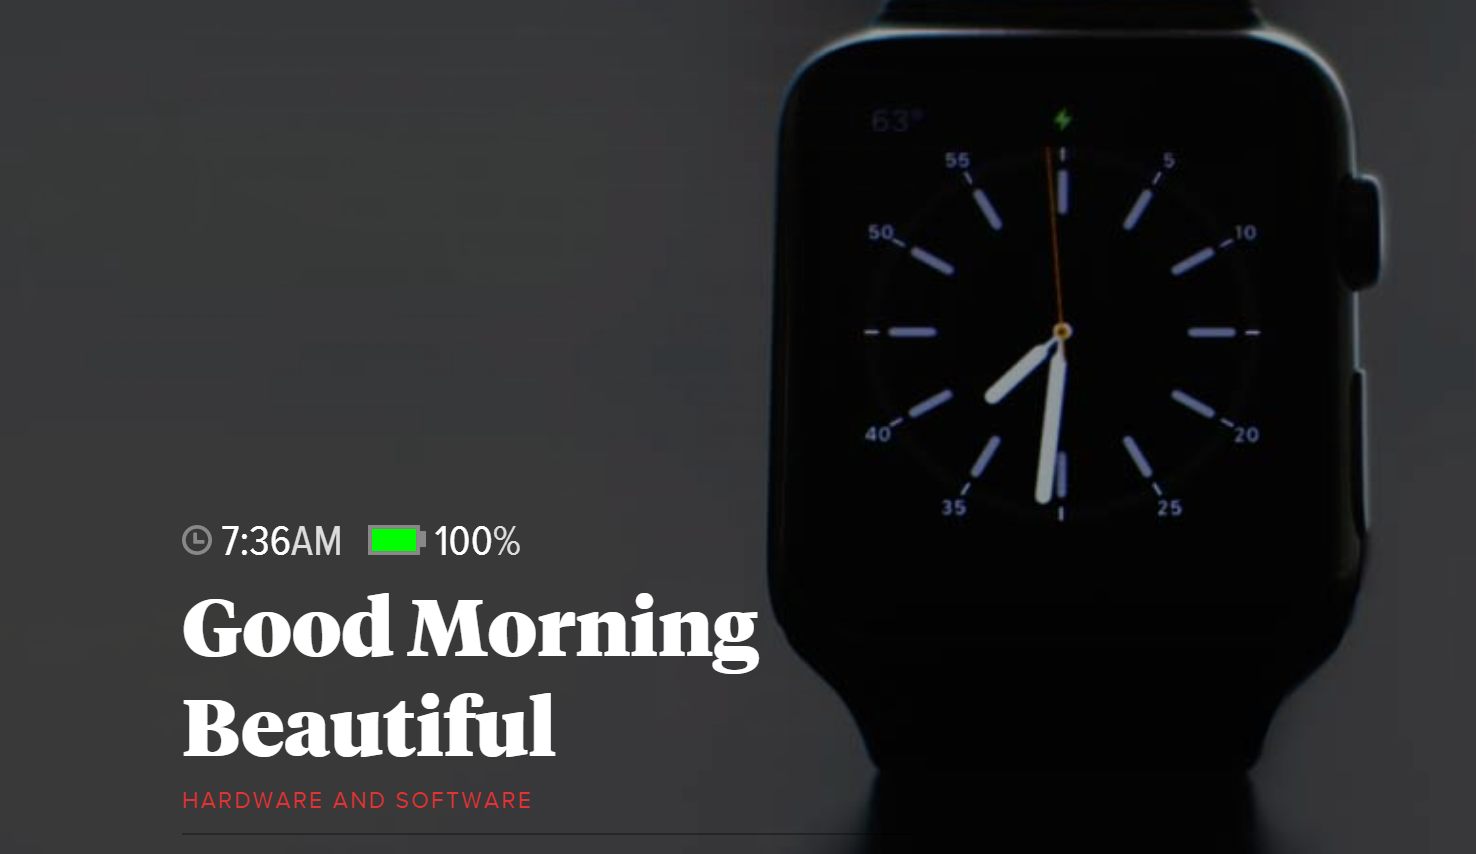 Apple Watch The Verge Review